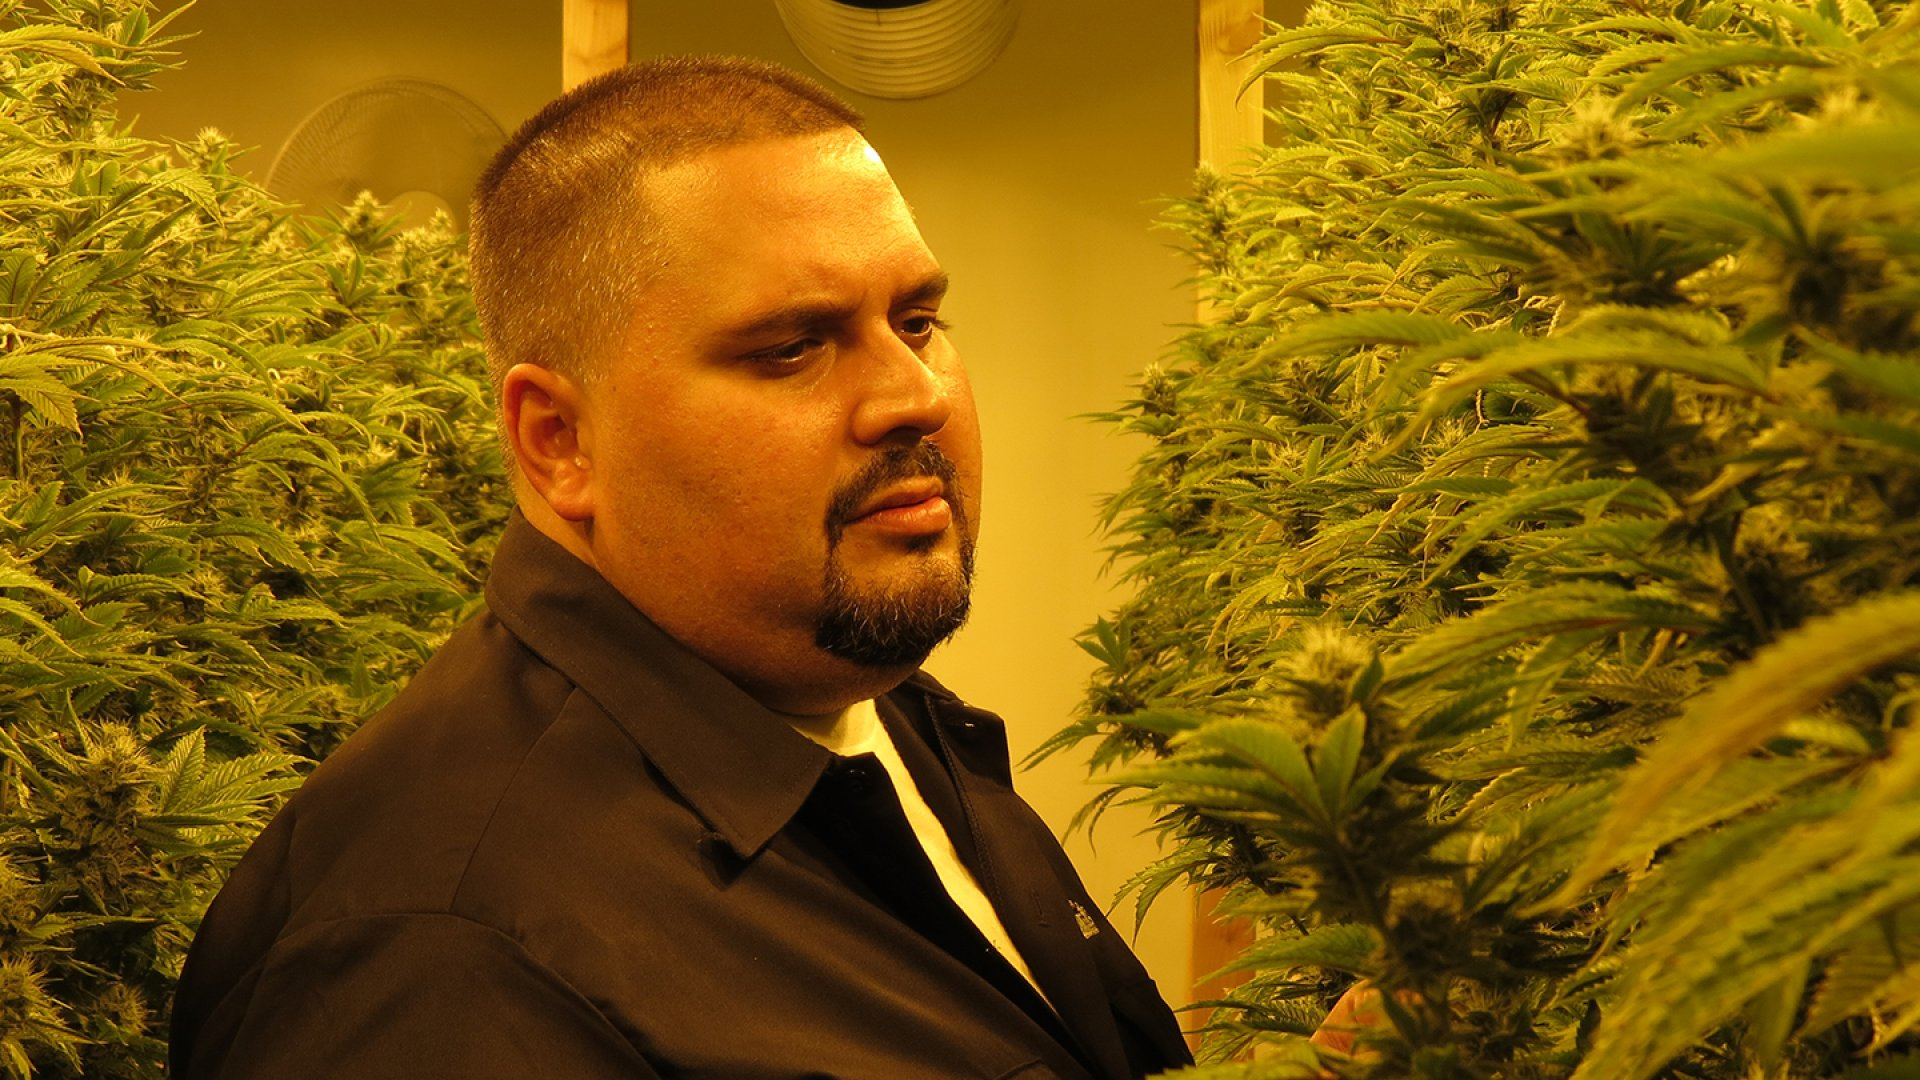 Ata Gonzalez, founder of G FarmaLabs, inspects his buds. Soon, he will extract all the THC and make concentrate to infuse chocolate and fill vape pens.